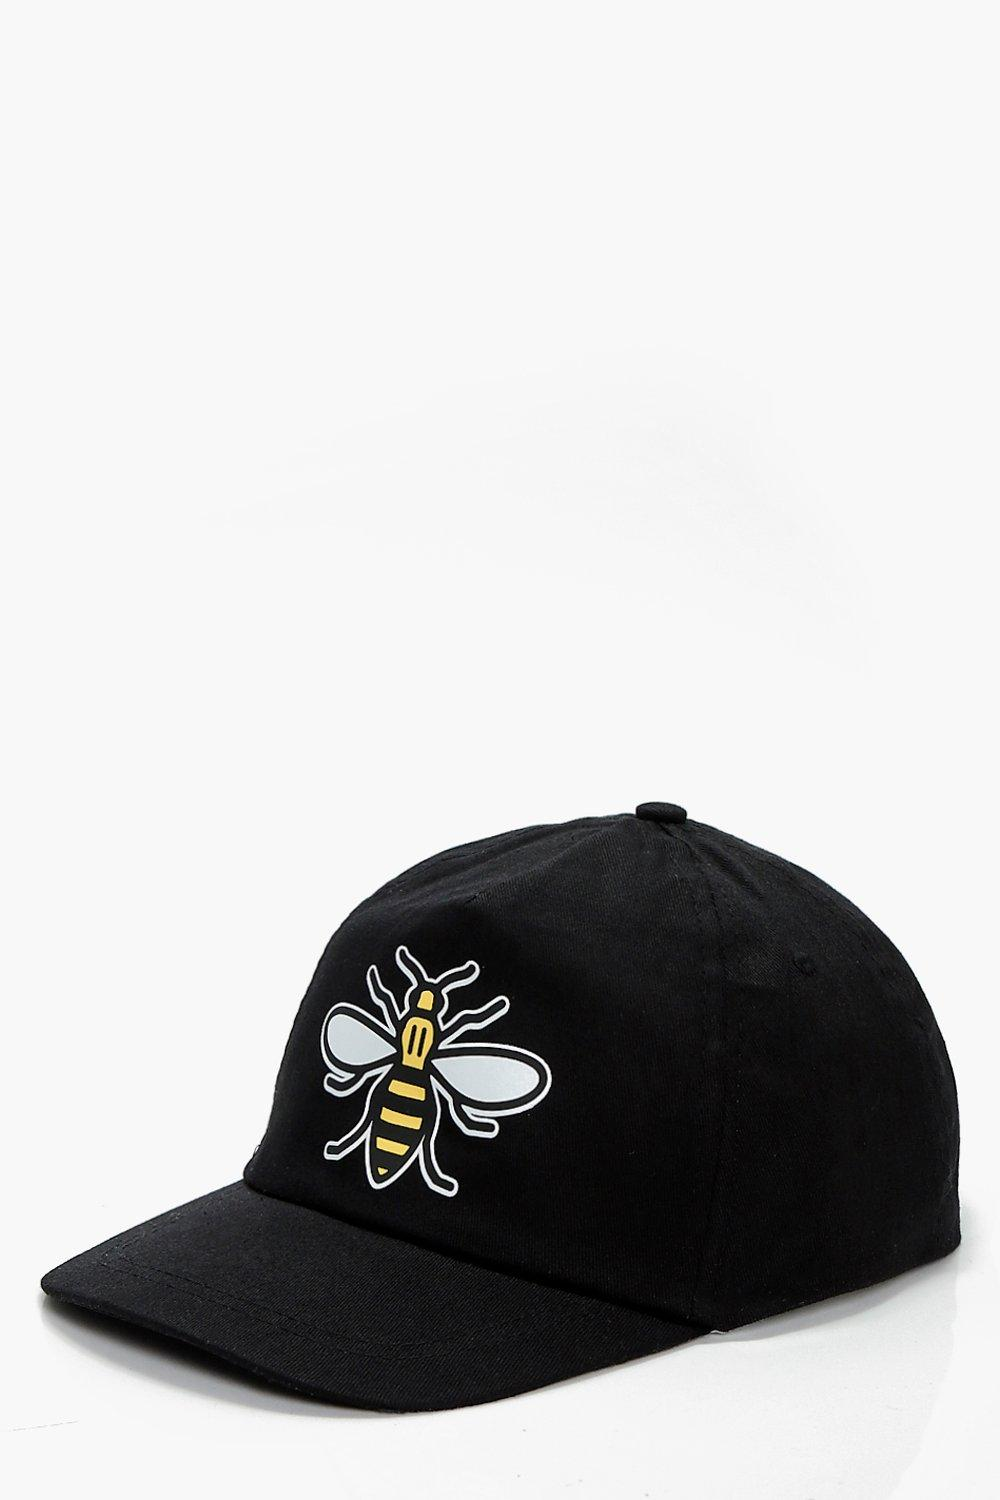 Cap - BEE - black - Charity Cap - BEE - black